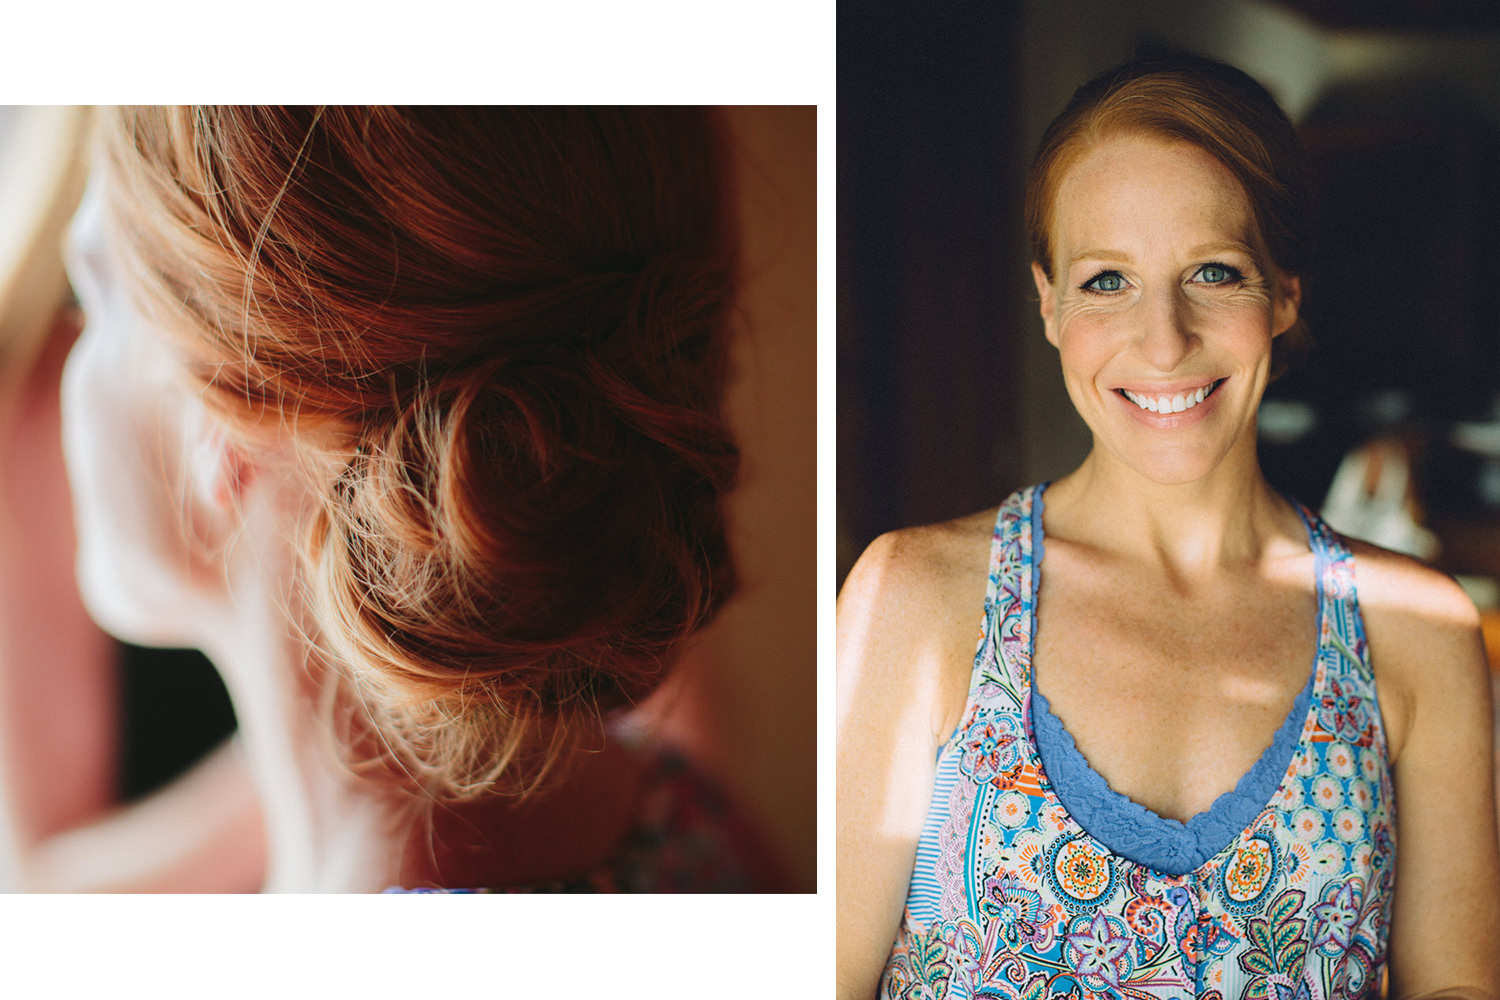 The bride getting ready for her destination wedding in Nicaragua